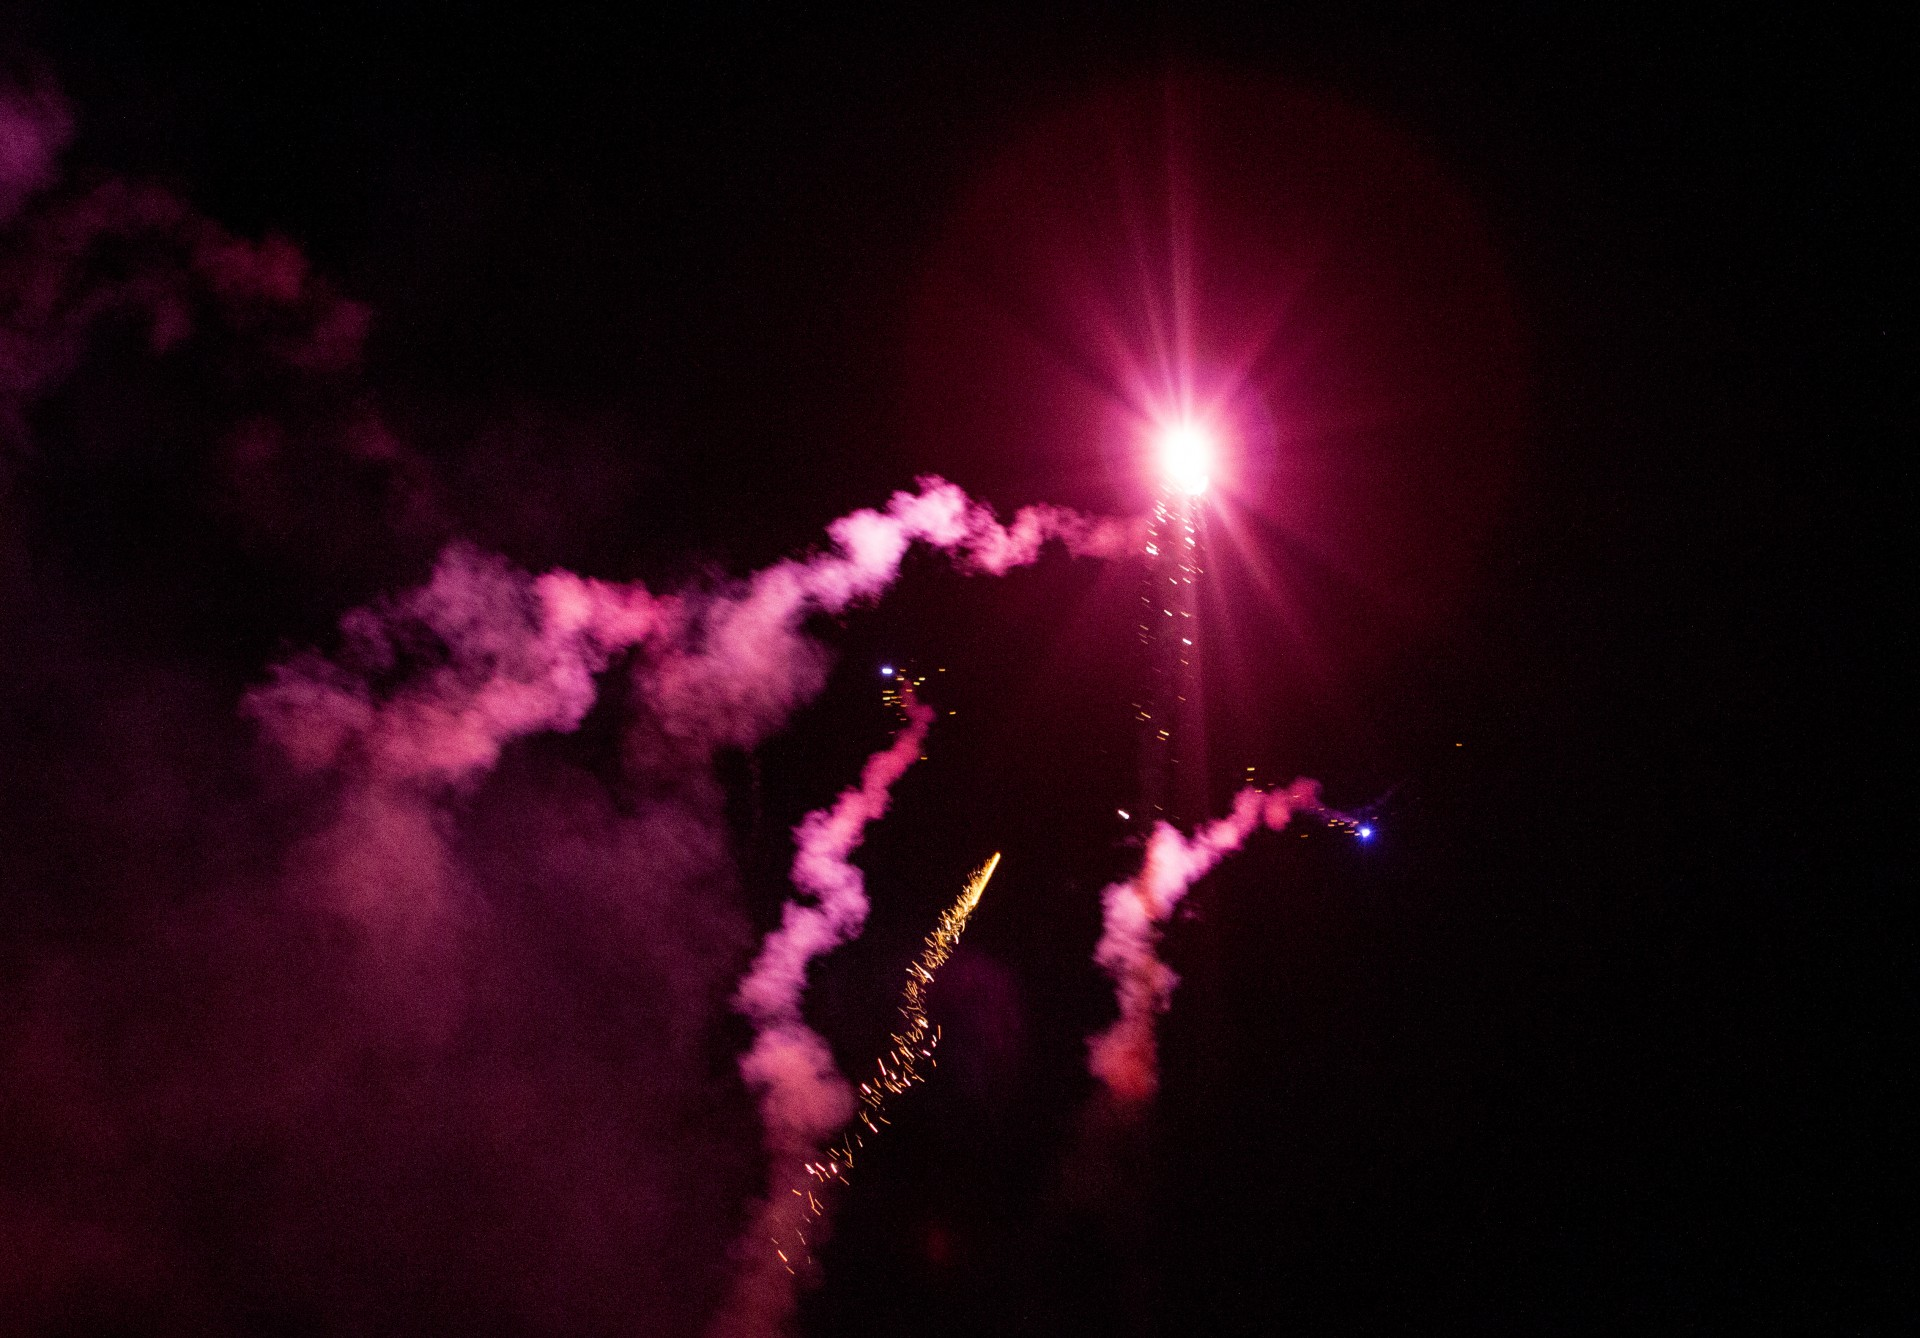 Fireworks Light Effects Free Stock Photo - Public Domain Pictures